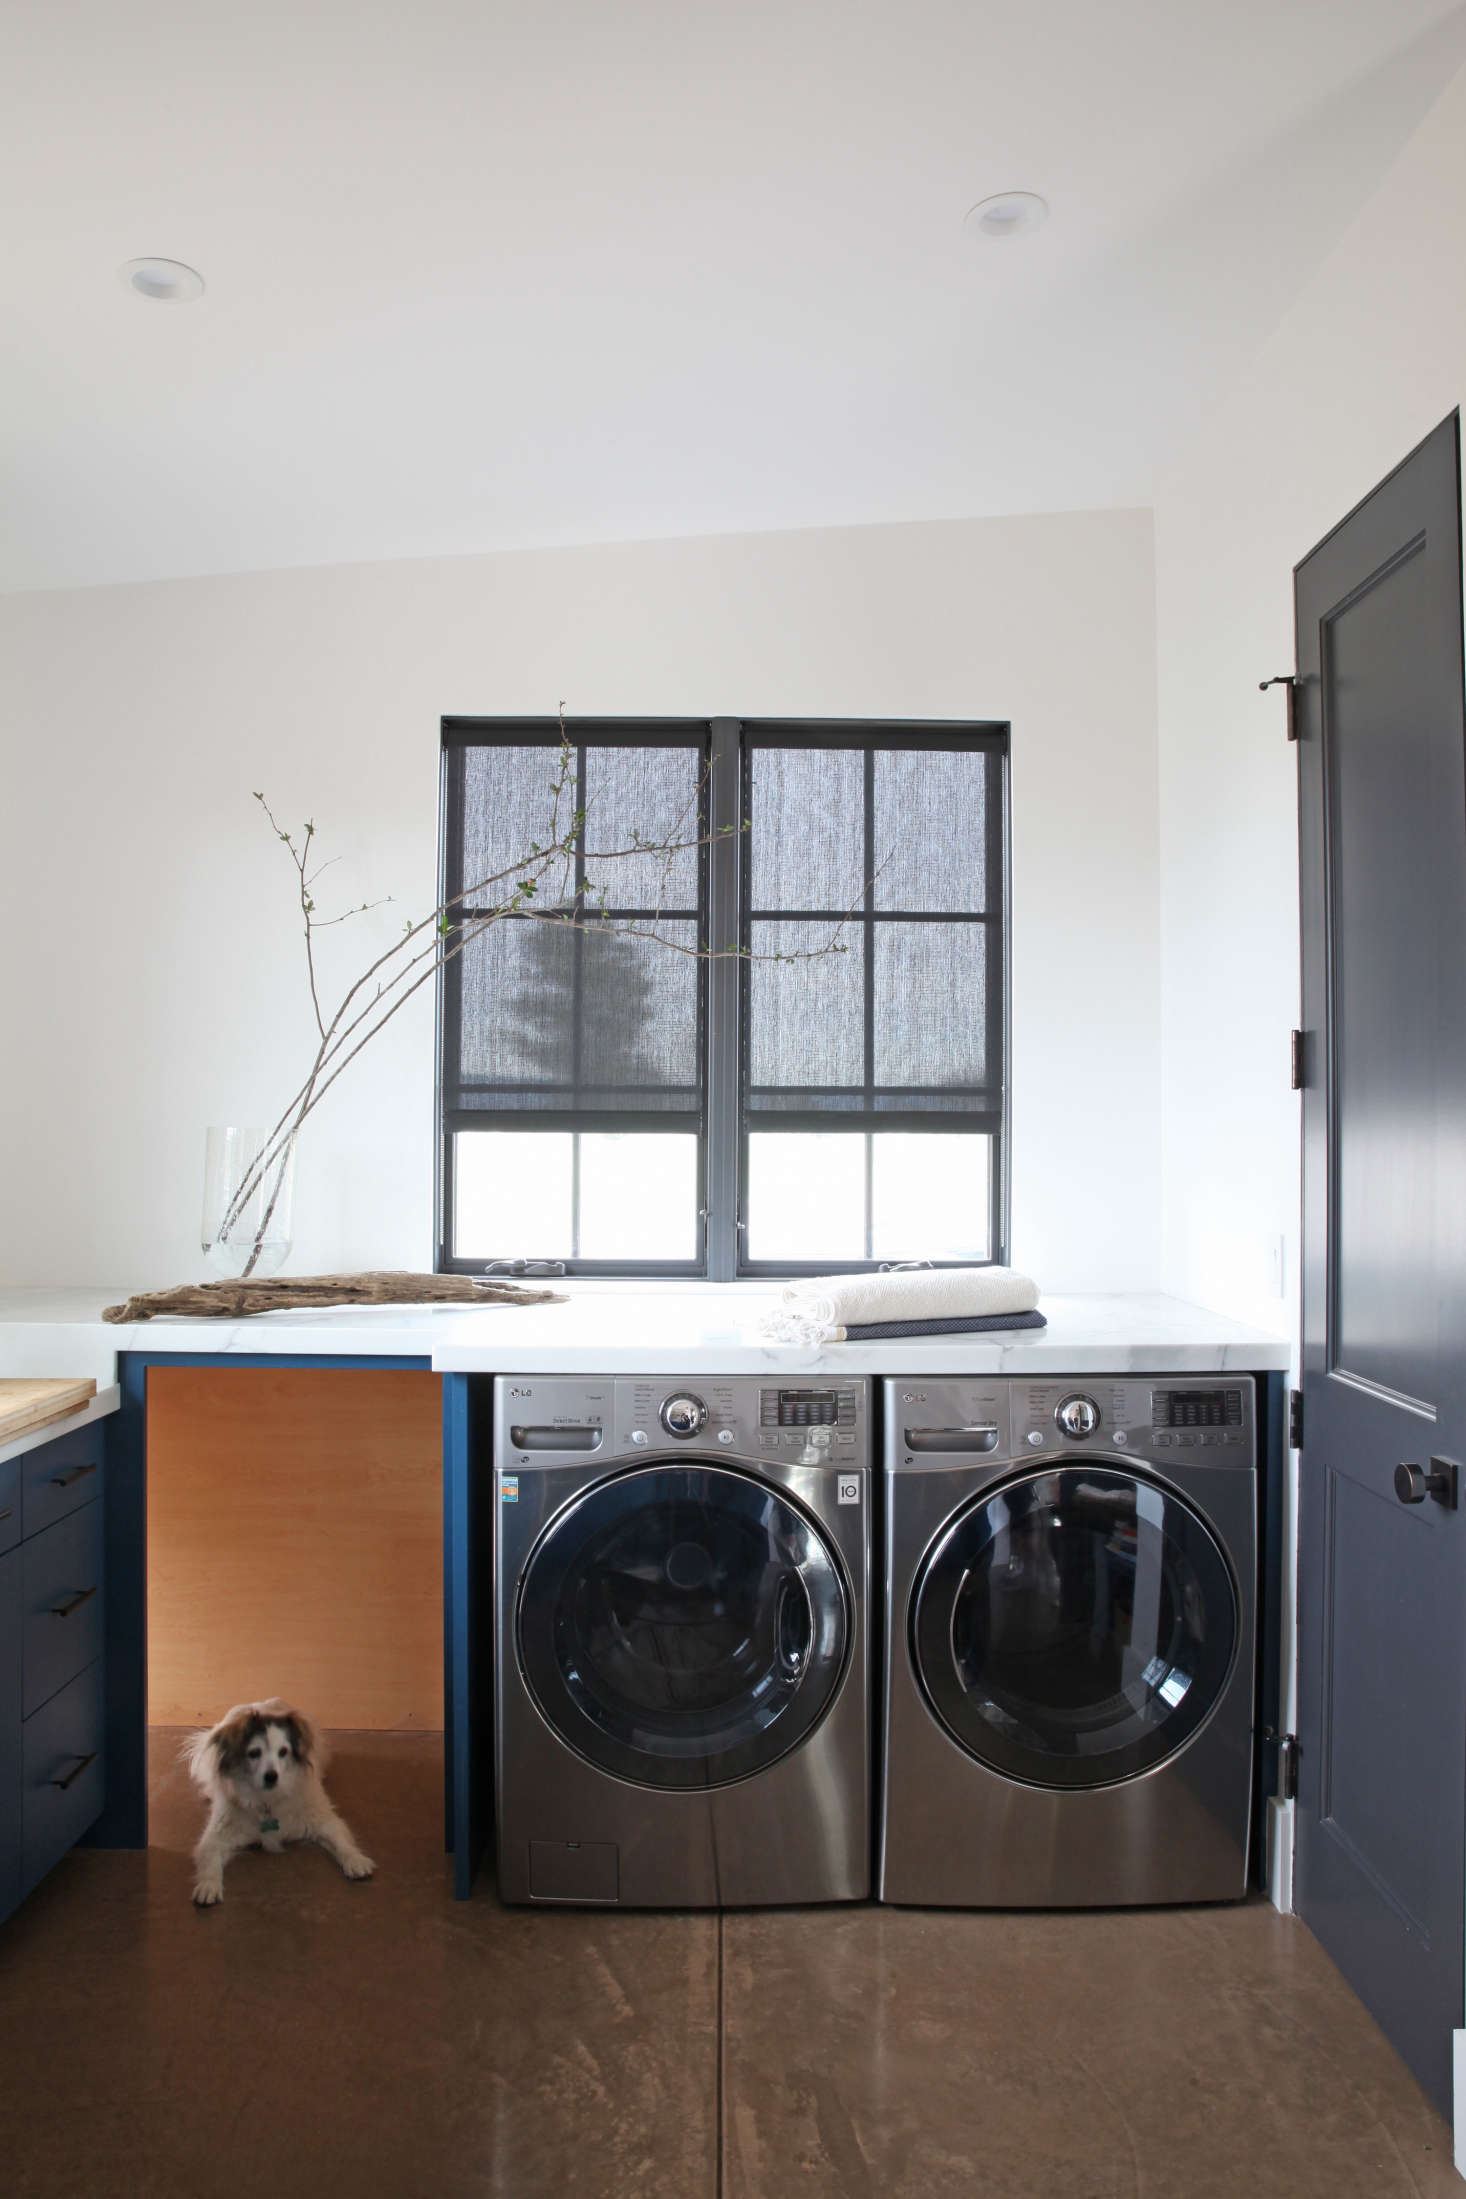 New Washer And Dryer Remodeling 101 What To Know When Replacing Your Washer Or Dryer